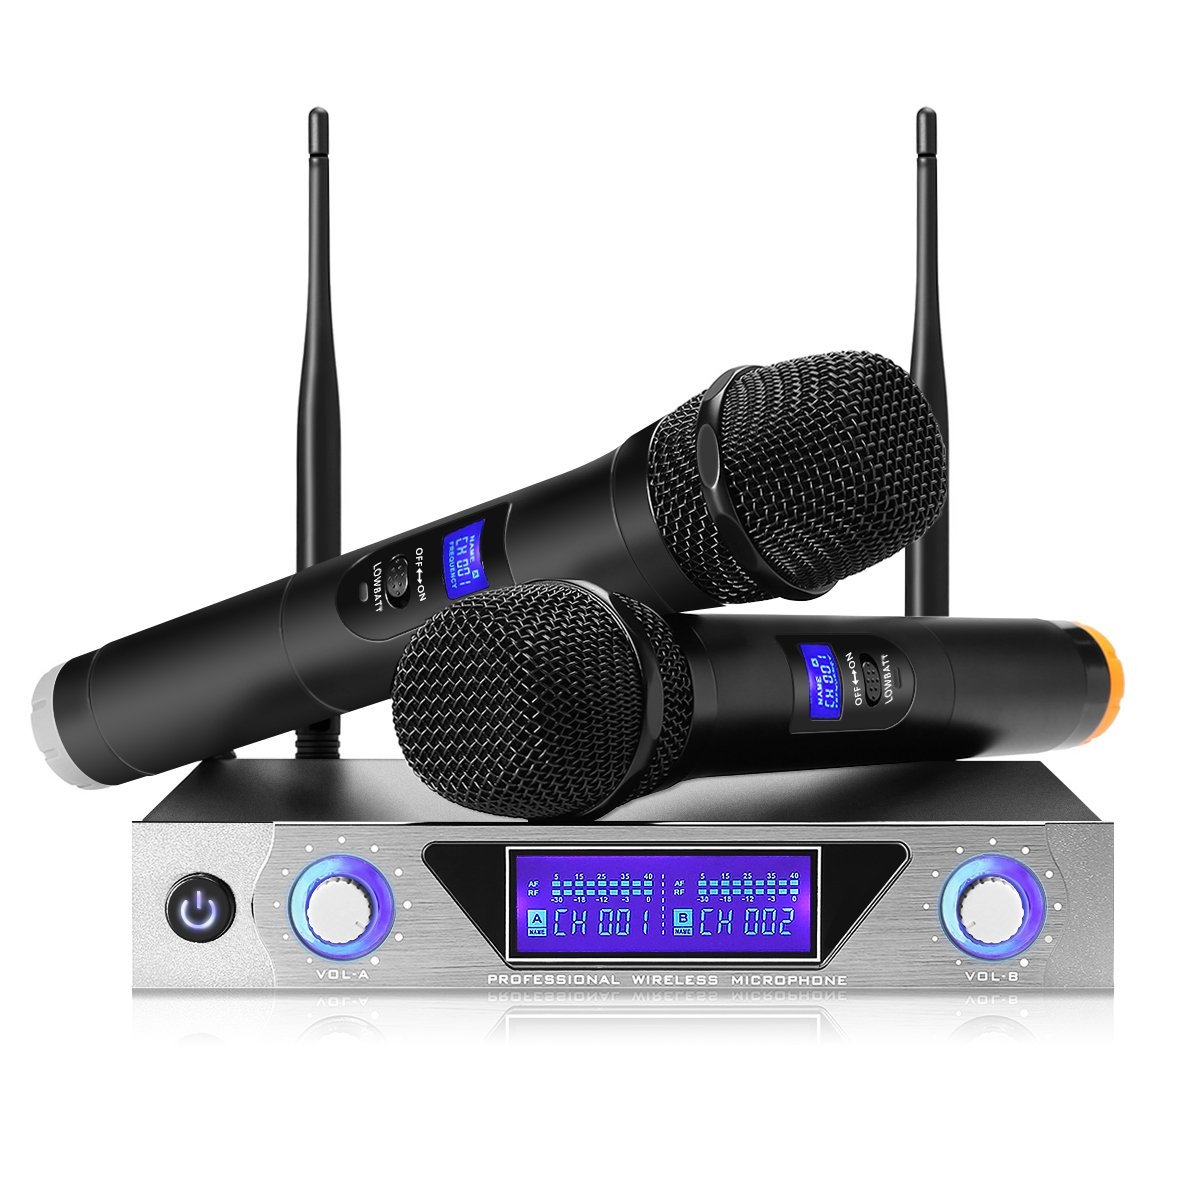 NASUM UHF Dual Channel Professional Handheld Wireless Microphone System with Dual Wireless Dynamic Microphones,LCD Display Professional Home KTV Set for Party,Meeting,Karaoke,YouTube,Classroom Black by NASUM